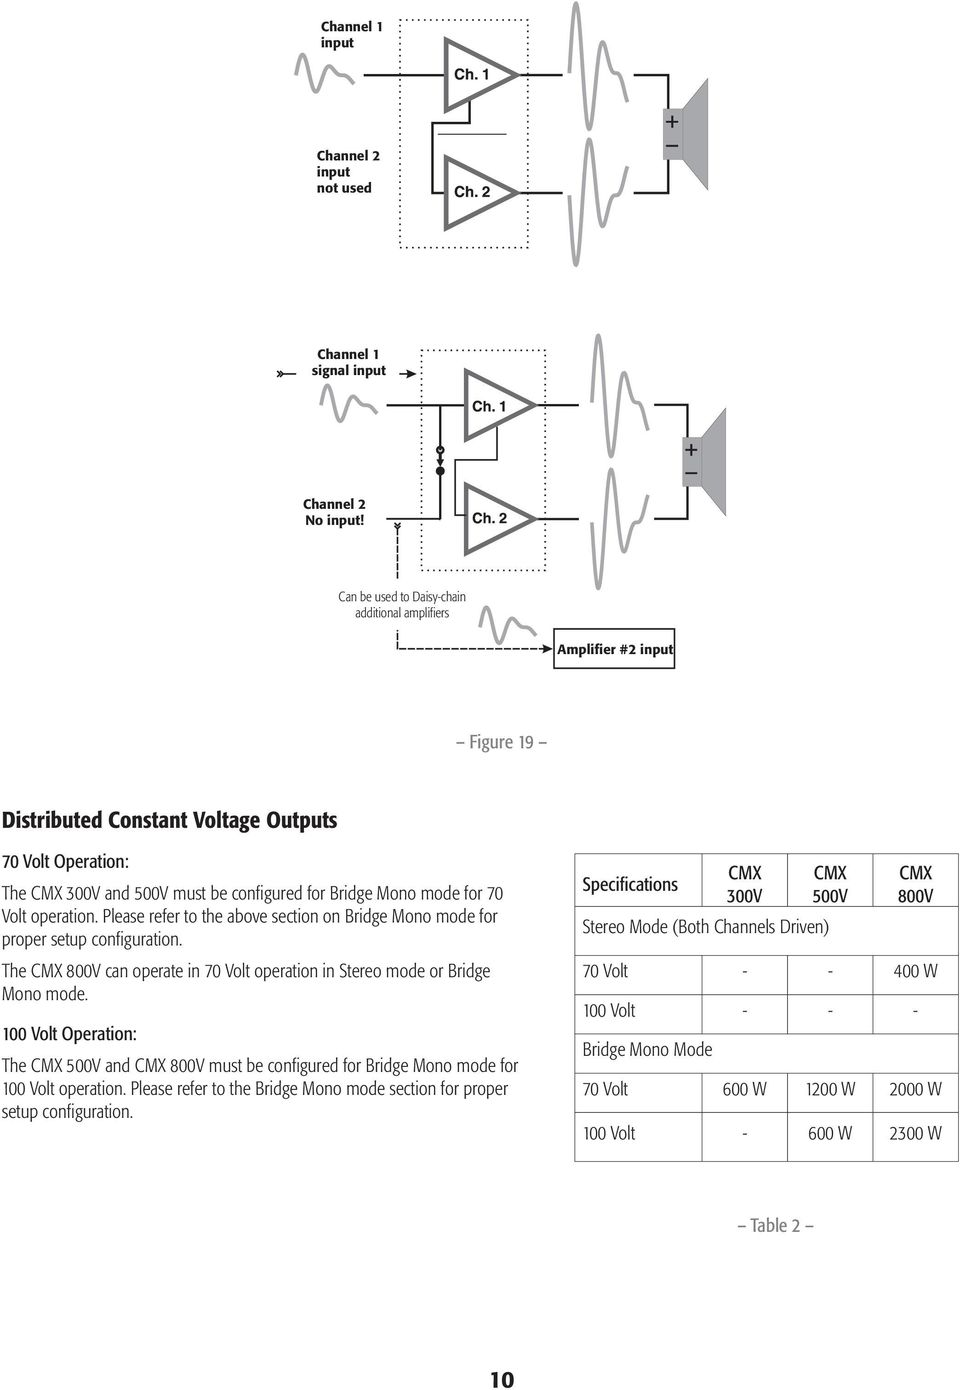 for 70 Volt operation. Please refer to the above section on Bridge Mono mode for proper setup configuration. The CMX 800V can operate in 70 Volt operation in Stereo mode or Bridge Mono mode.